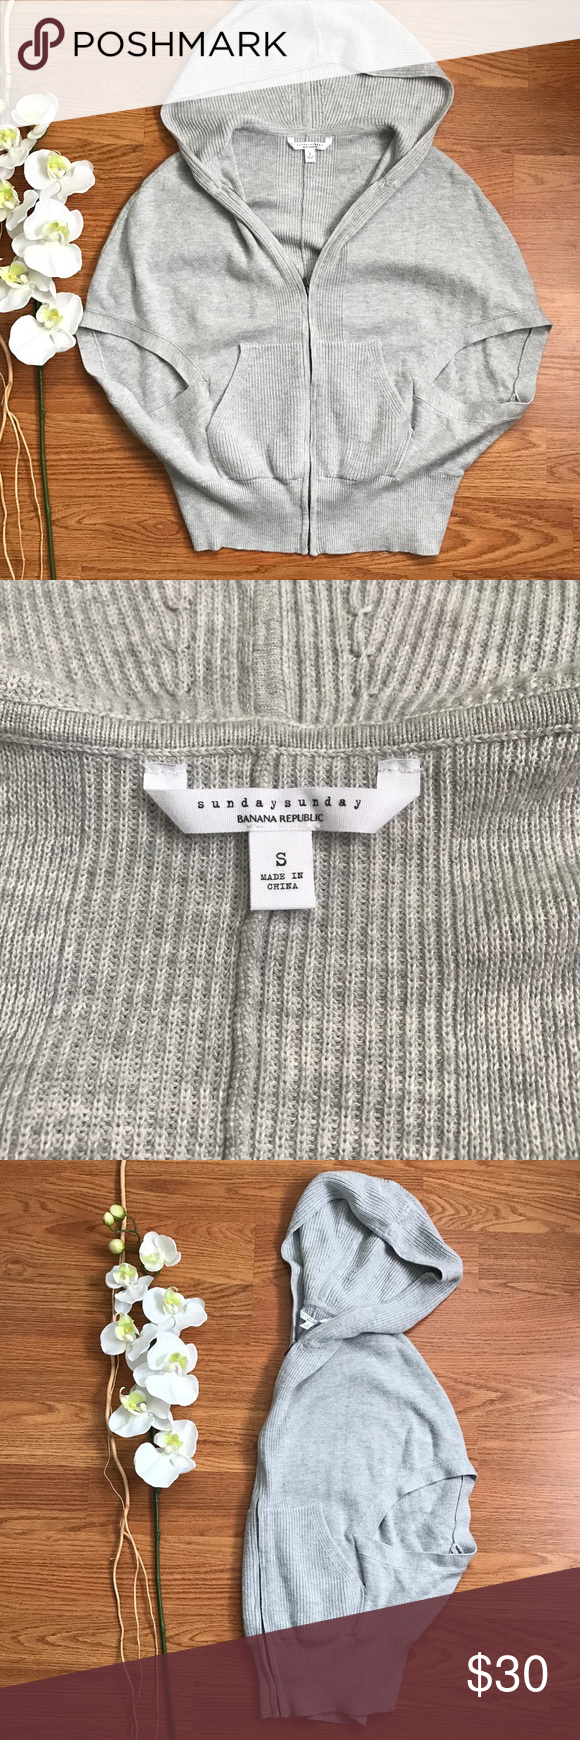 Banana Republic Sunday Sunday Cocoon Lounge Top S Cozy + chic lounge sweater. Sunday Sunday Banana Republics lounge line. Size Small. Excellent Condition Banana Republic Tops